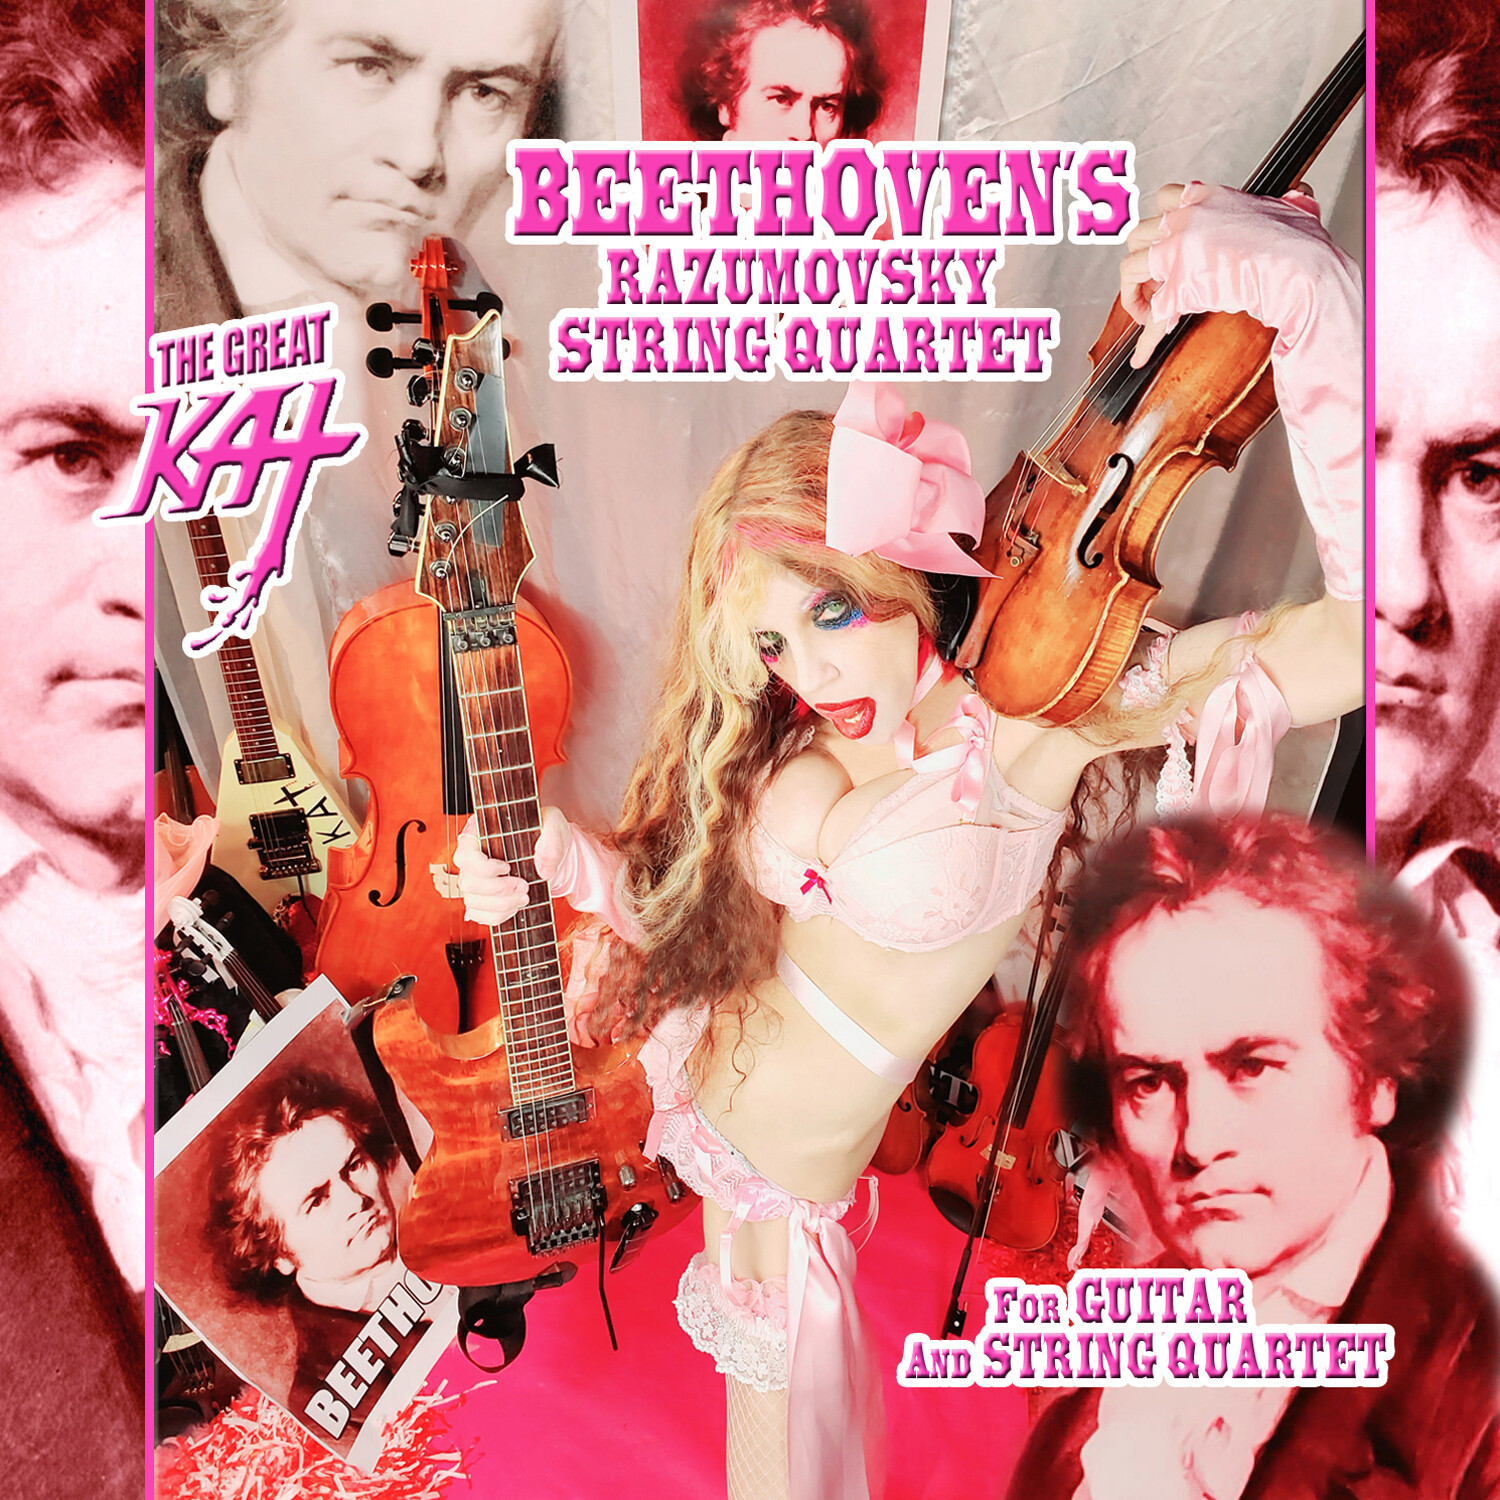 """NEW BEETHOVEN'S """"RAZUMOVSKY STRING QUARTET FOR GUITAR AND STRING QUARTET"""" SINGLE Music CD by THE GREAT KAT (1:14)! PERSONALIZED AUTOGRAPHED by THE GREAT KAT! (Signed to Customer's Name)!"""